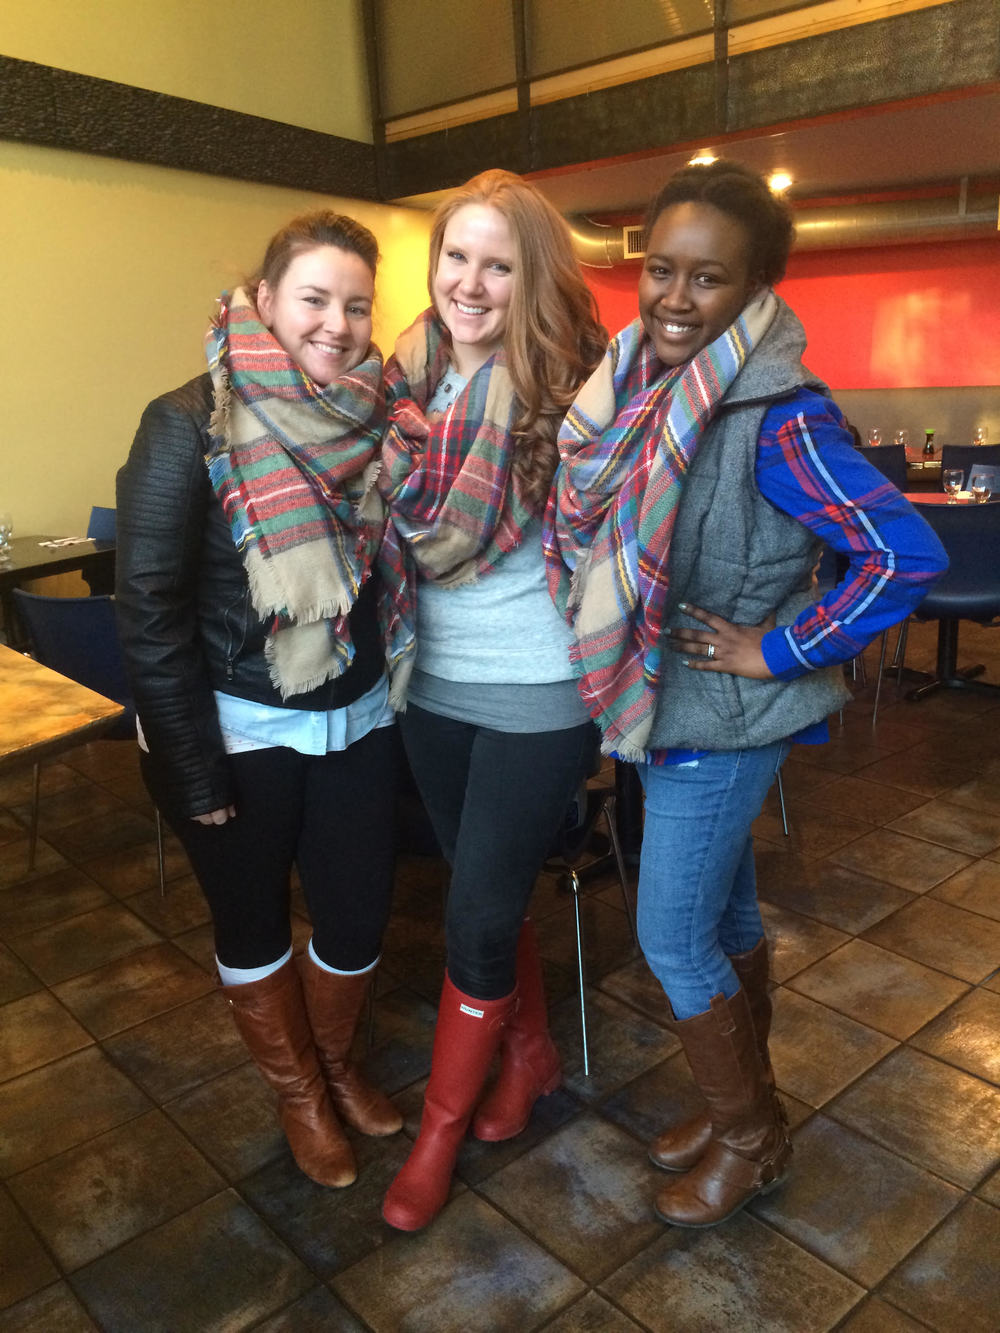 From L to R: Dianne, me, and Sandra in our matching blanket scarves, that was totally unplanned. I love these girls so much.